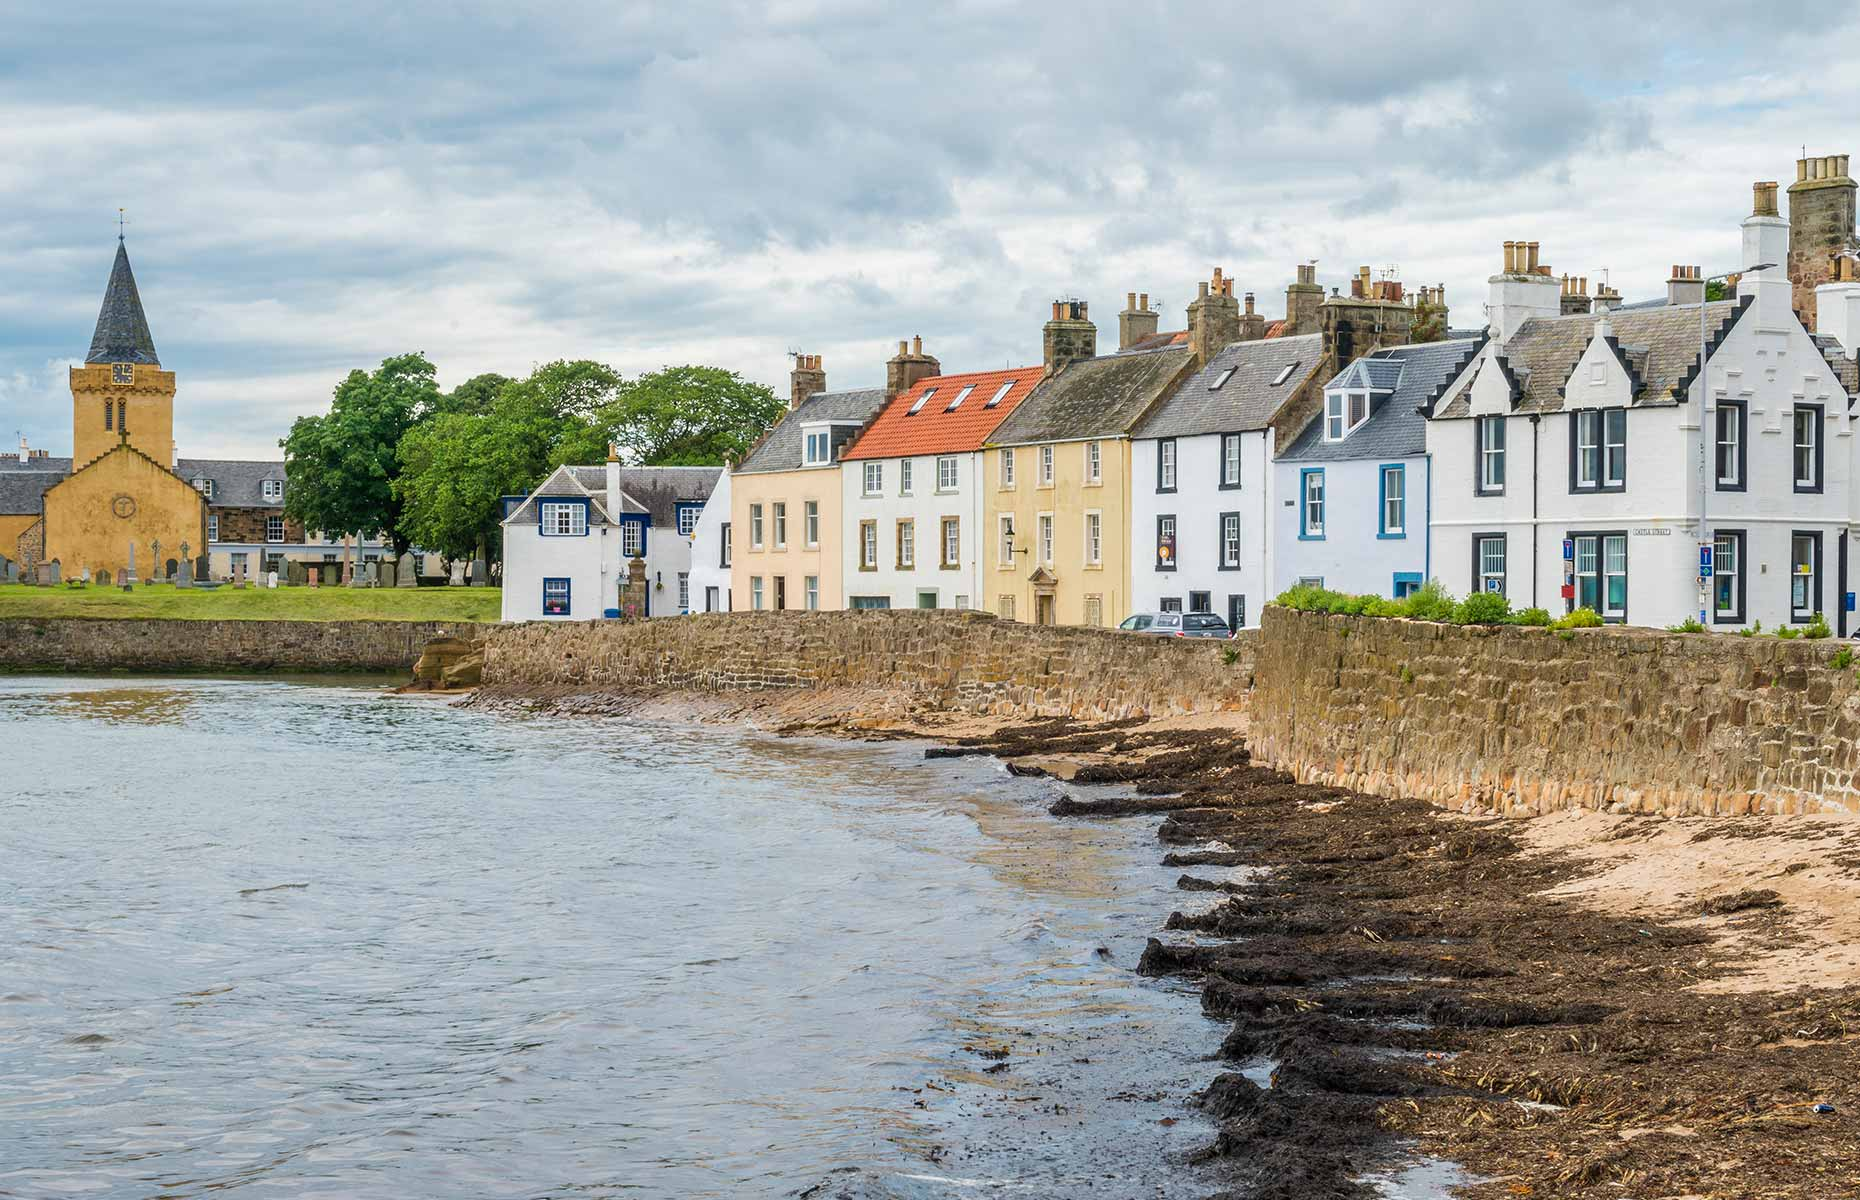 Fife has the second-largest difference between council tax bands. Image: Stefano_Valeri / Shutterstock